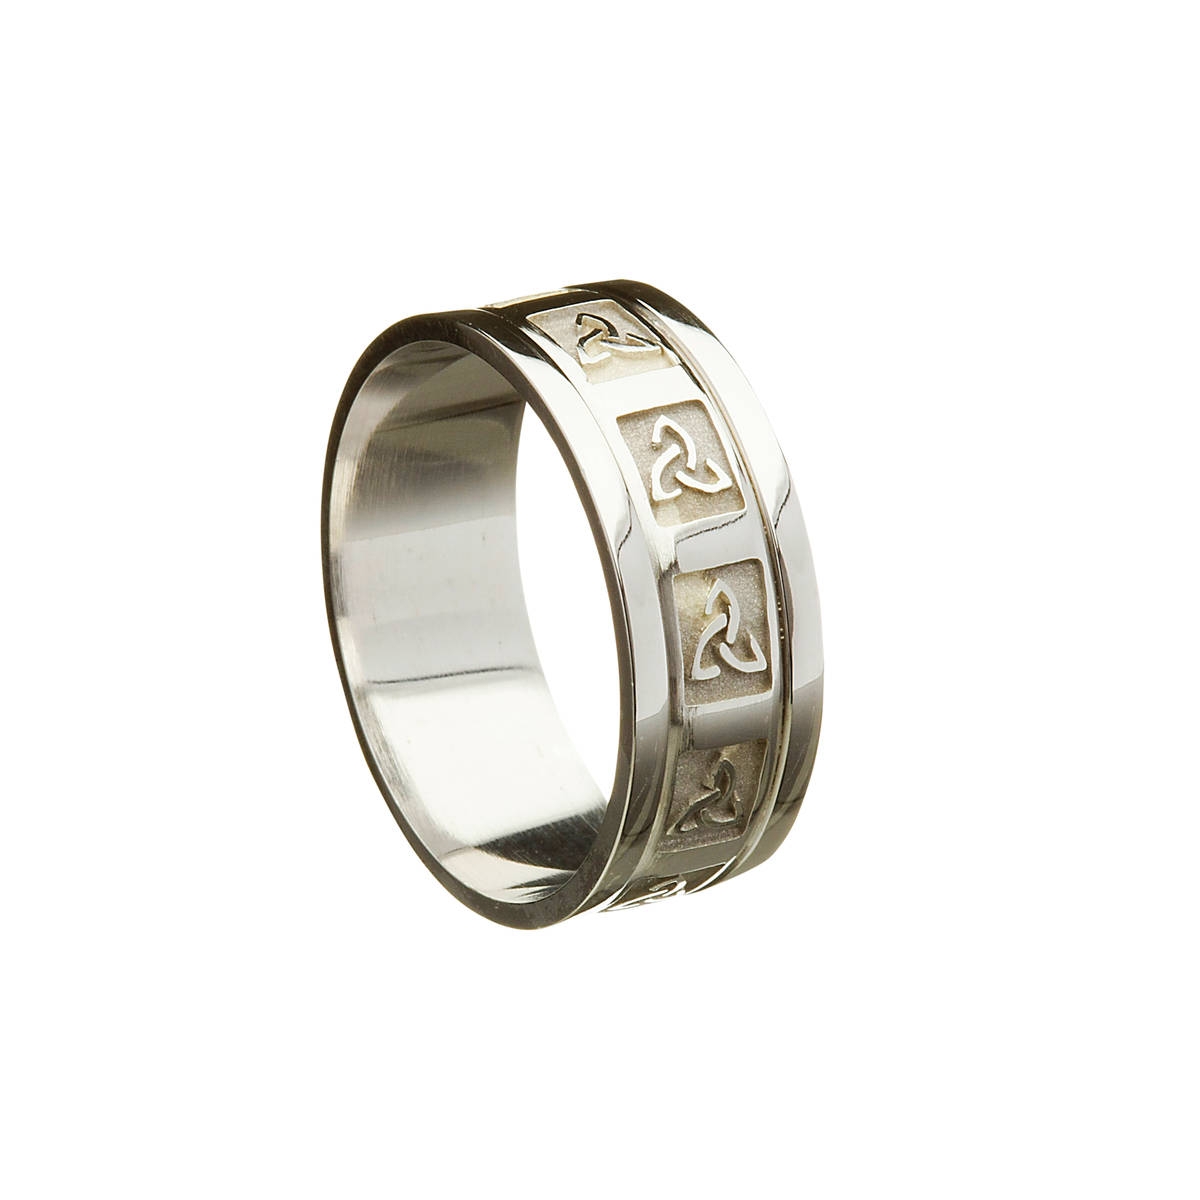 14ct white gold gents heavy wedding band with raised window Trinity Knot Design and heavy flat rims.   Width: 8.5 mm